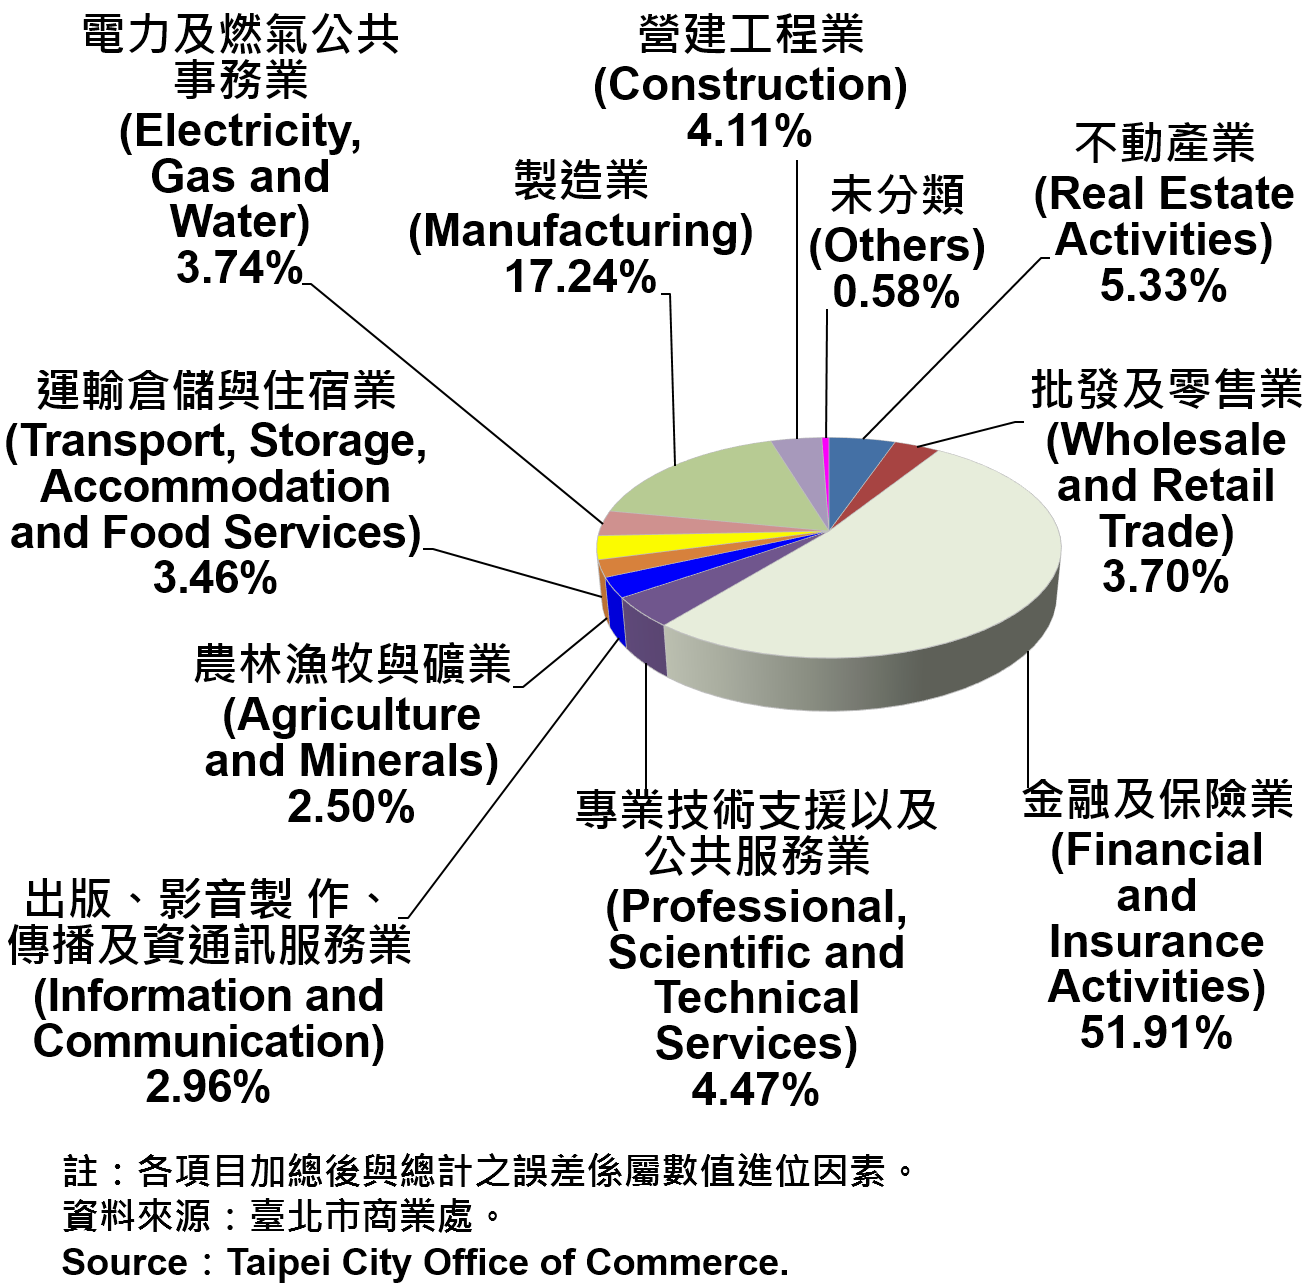 臺北市公司登記資本額產業別比重—2019 Ratios of Capital for the Companies and Firms Registered in Taipei City by Industry—2019